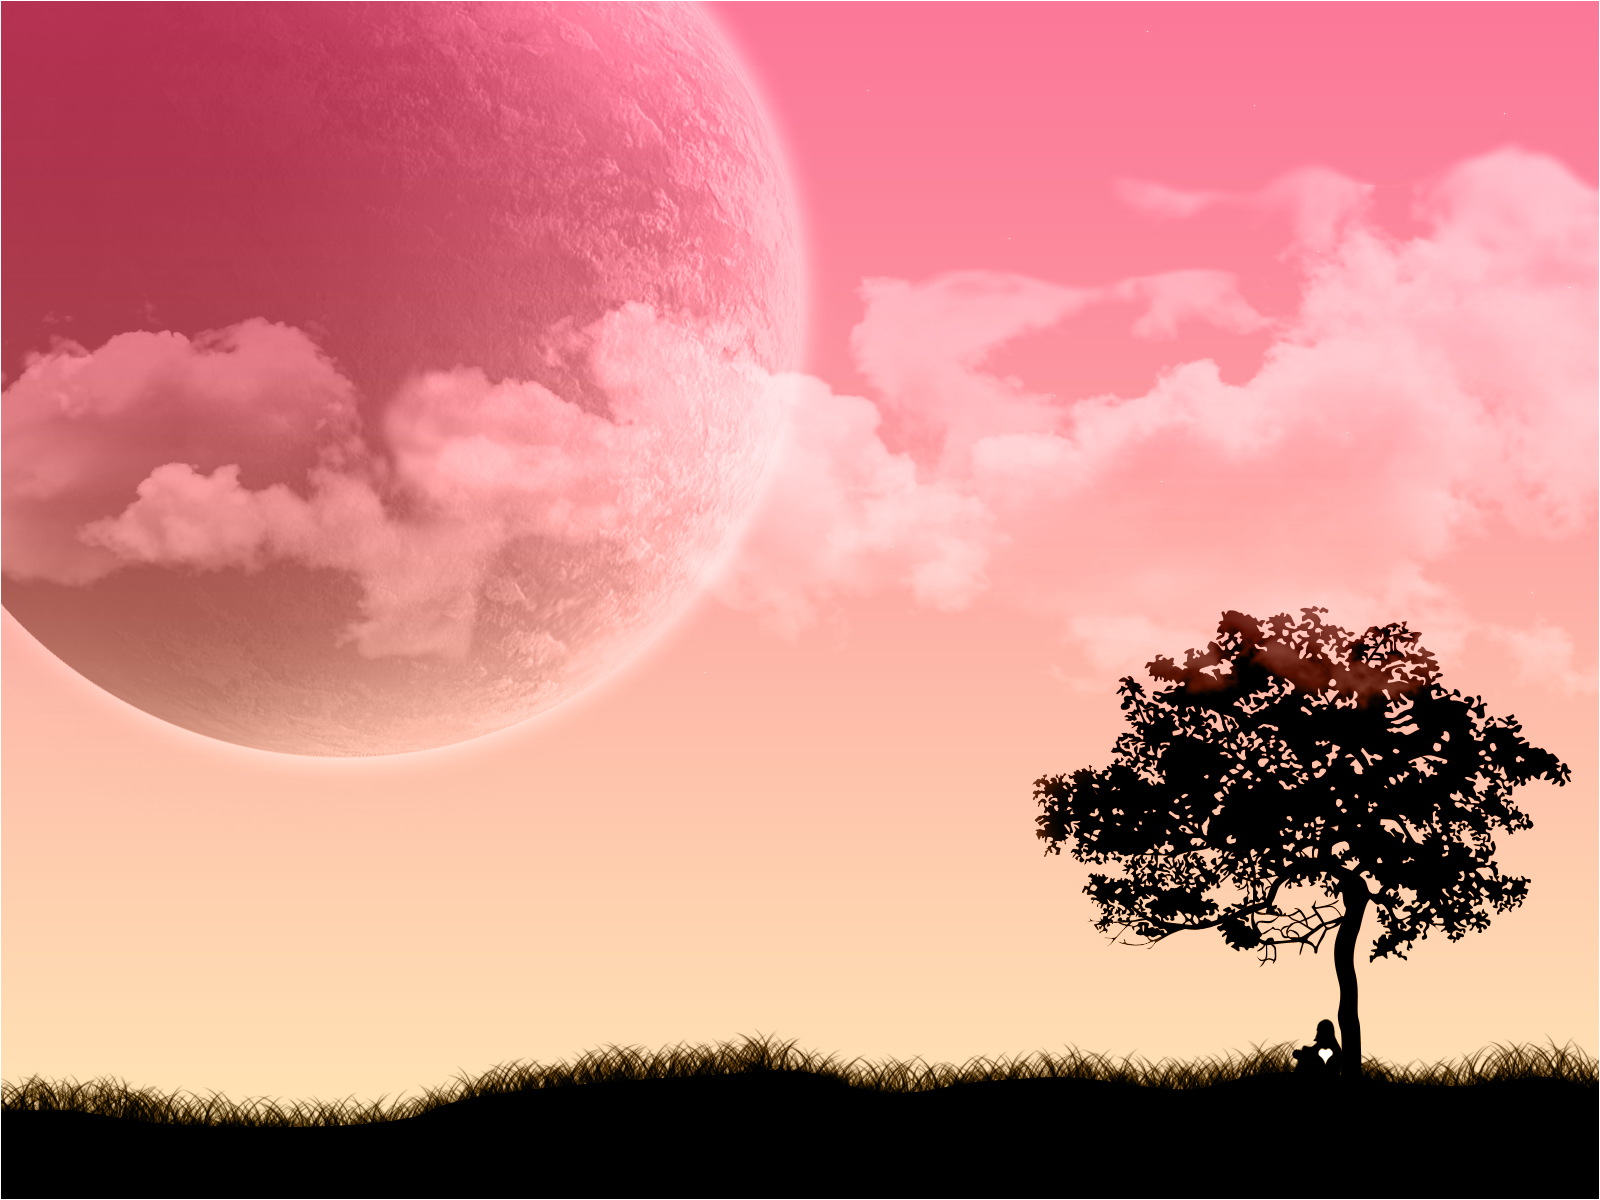 http://1.bp.blogspot.com/-BMh3q8JeKIw/Tf2OMIw1rKI/AAAAAAAAAsA/i7-TDYHLK54/s1600/pink-dream-wallpapers_6775_1600x1200.jpg